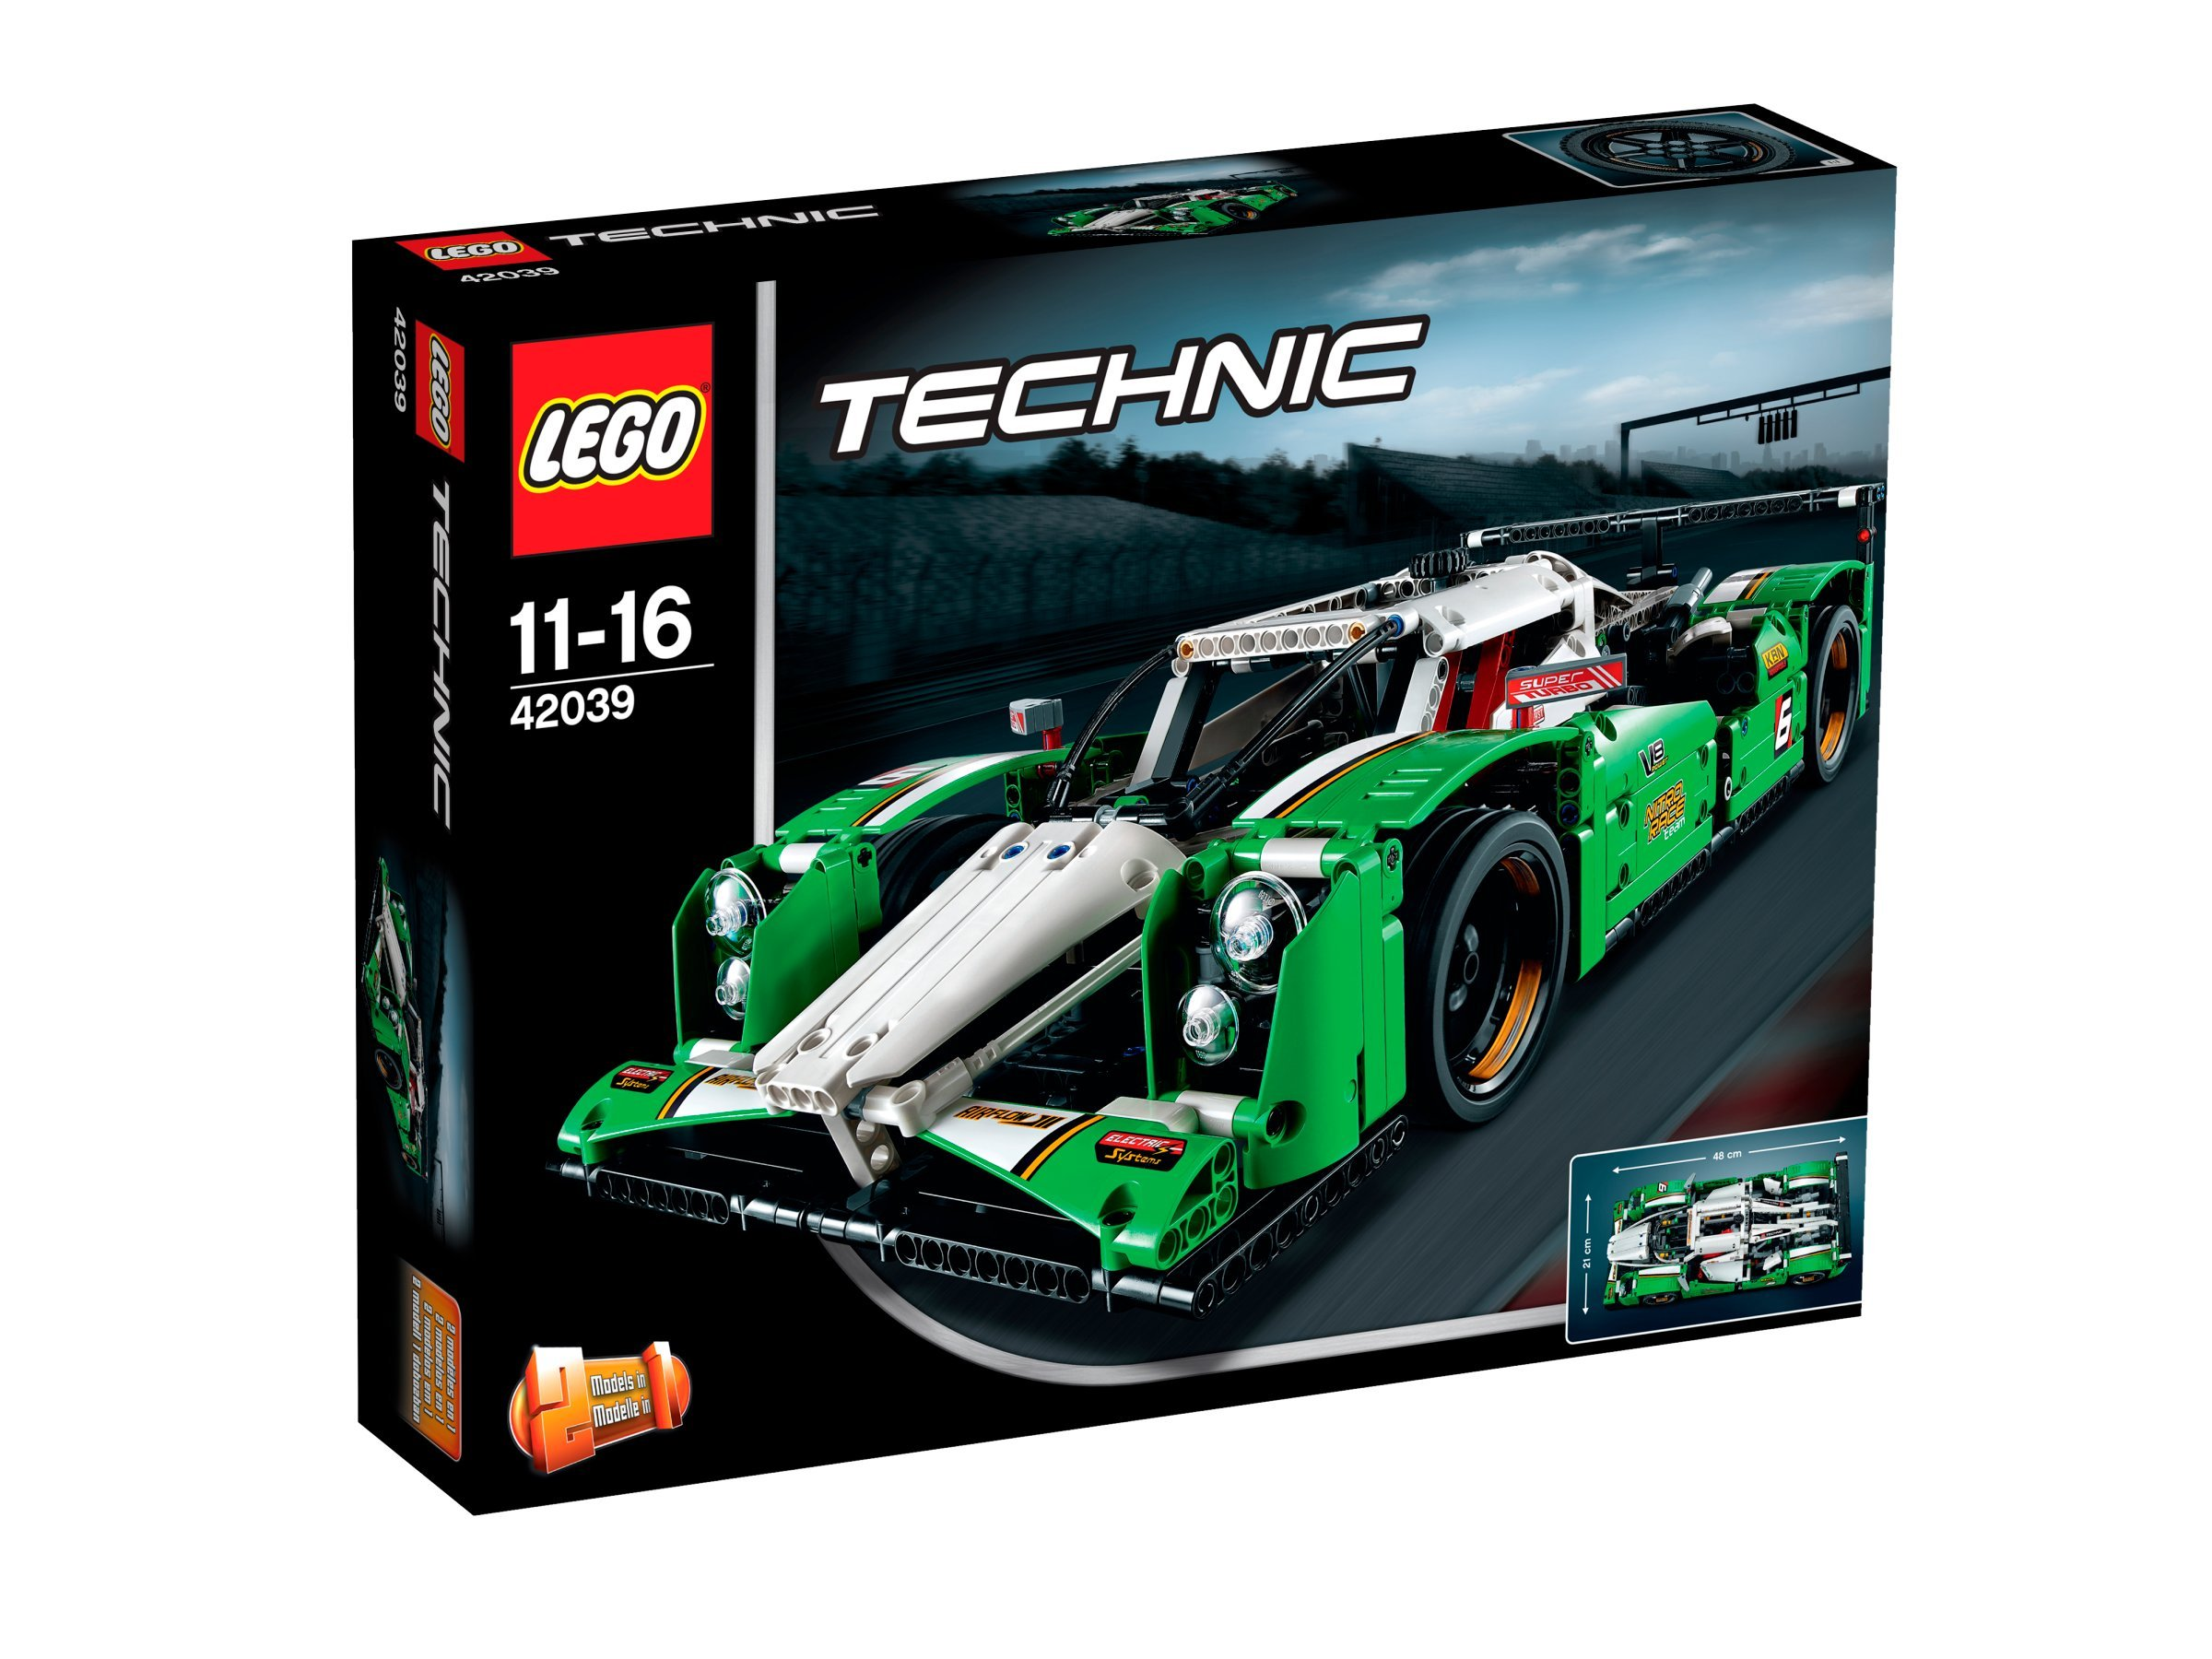 LEGO Technic 24 Hours Race Car 42039 by LEGO (Image #1)